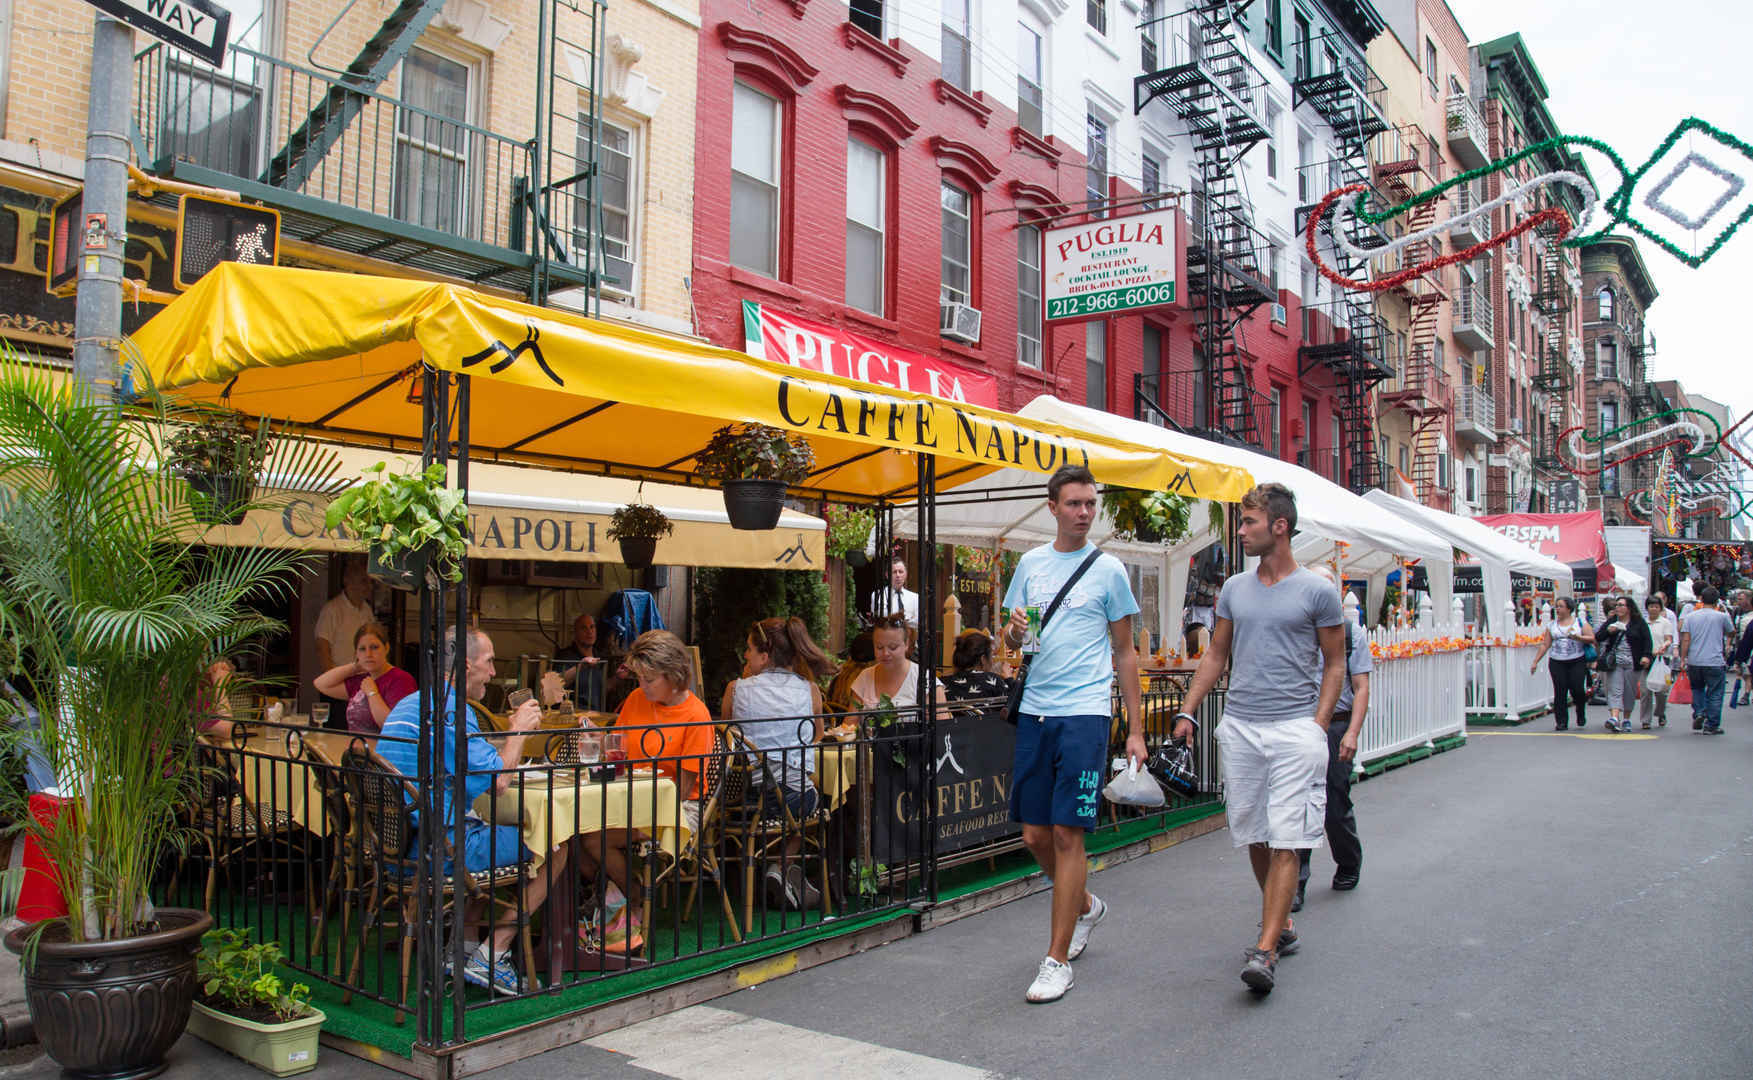 People dining at terrace of Cafe Napoli restaurant in Little Italy, New York